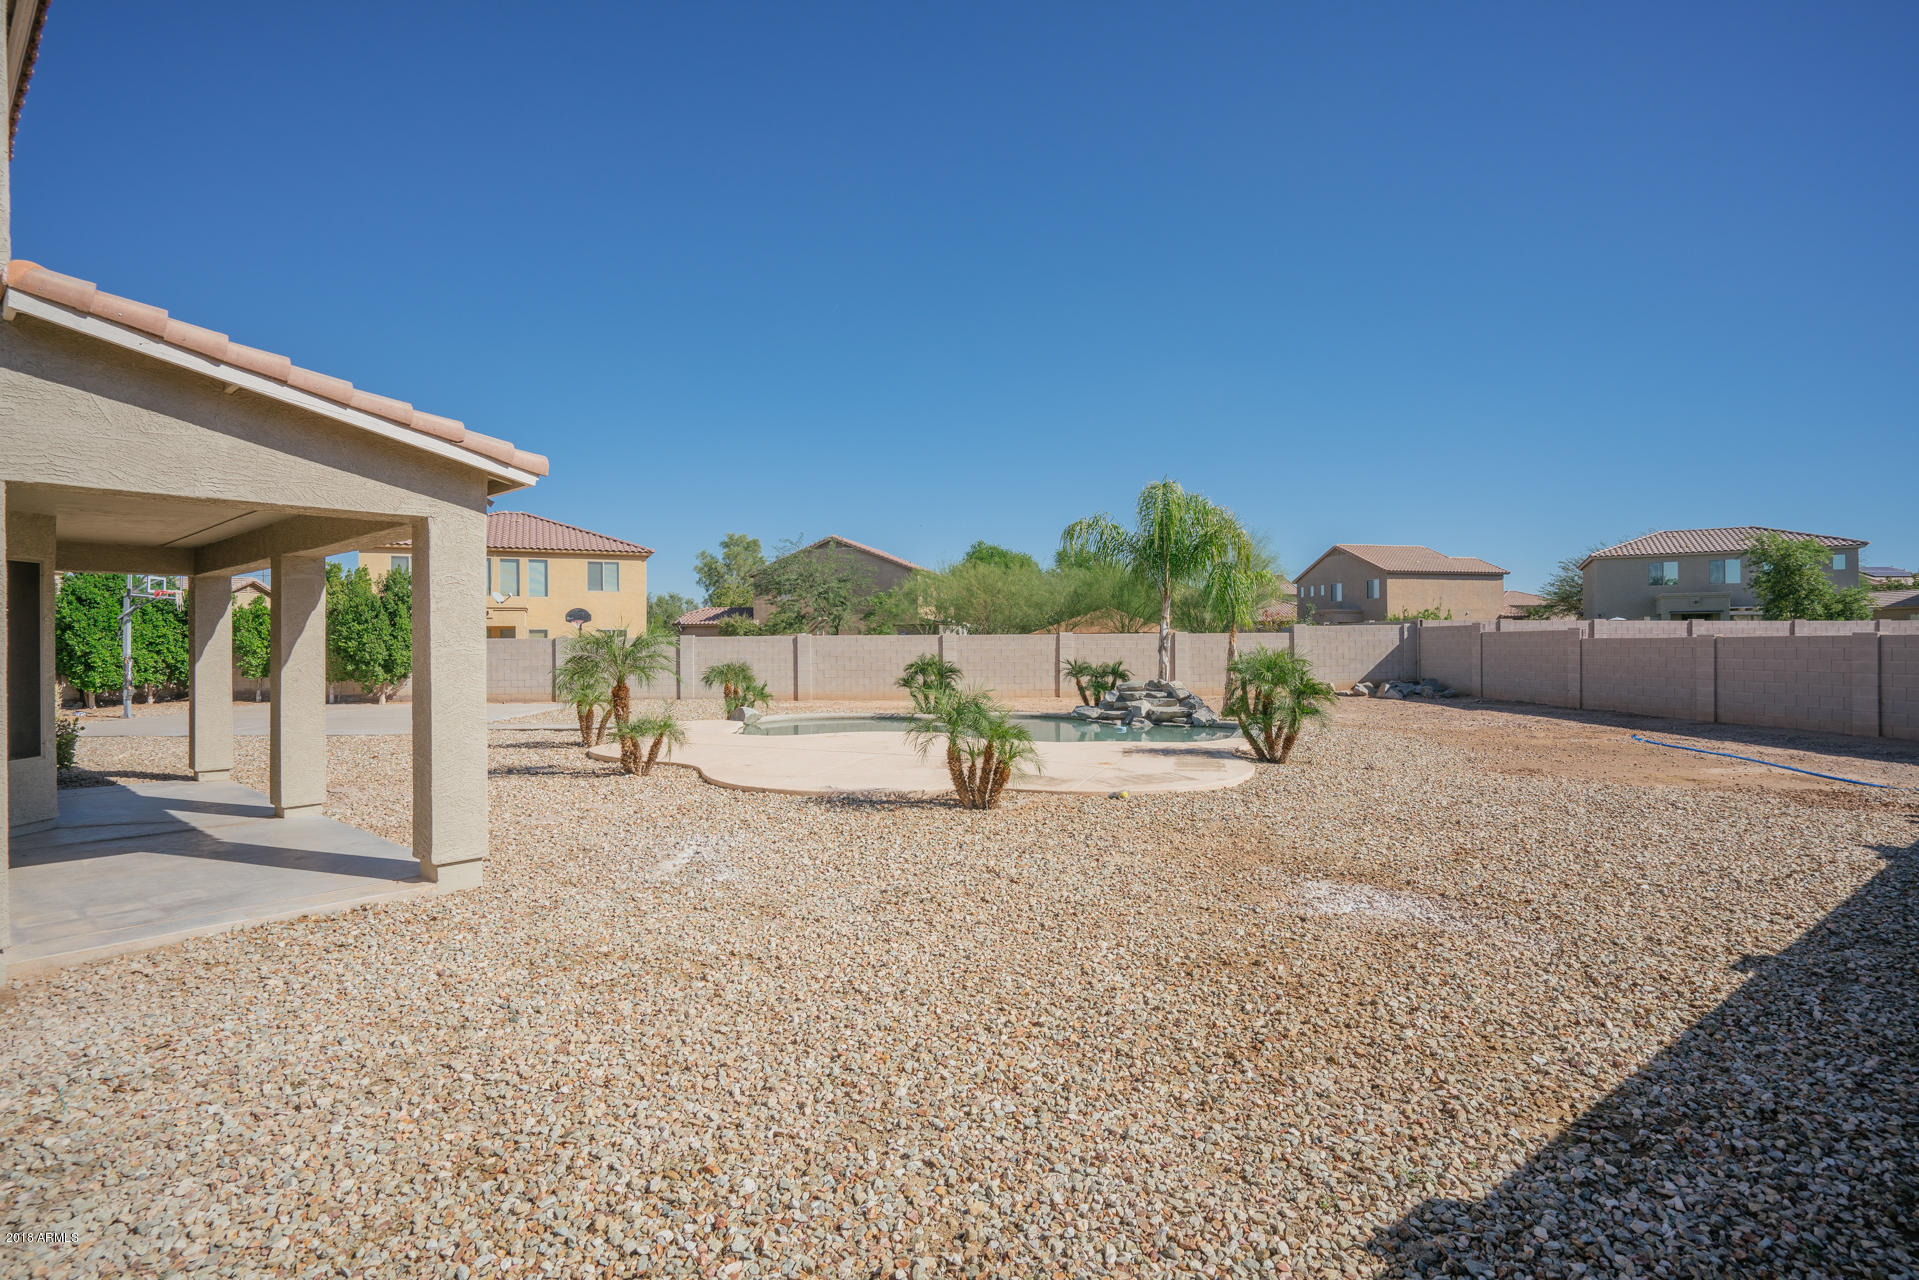 MLS 5842419 3721 S 101ST Drive, Tolleson, AZ 85353 Tolleson AZ Private Pool